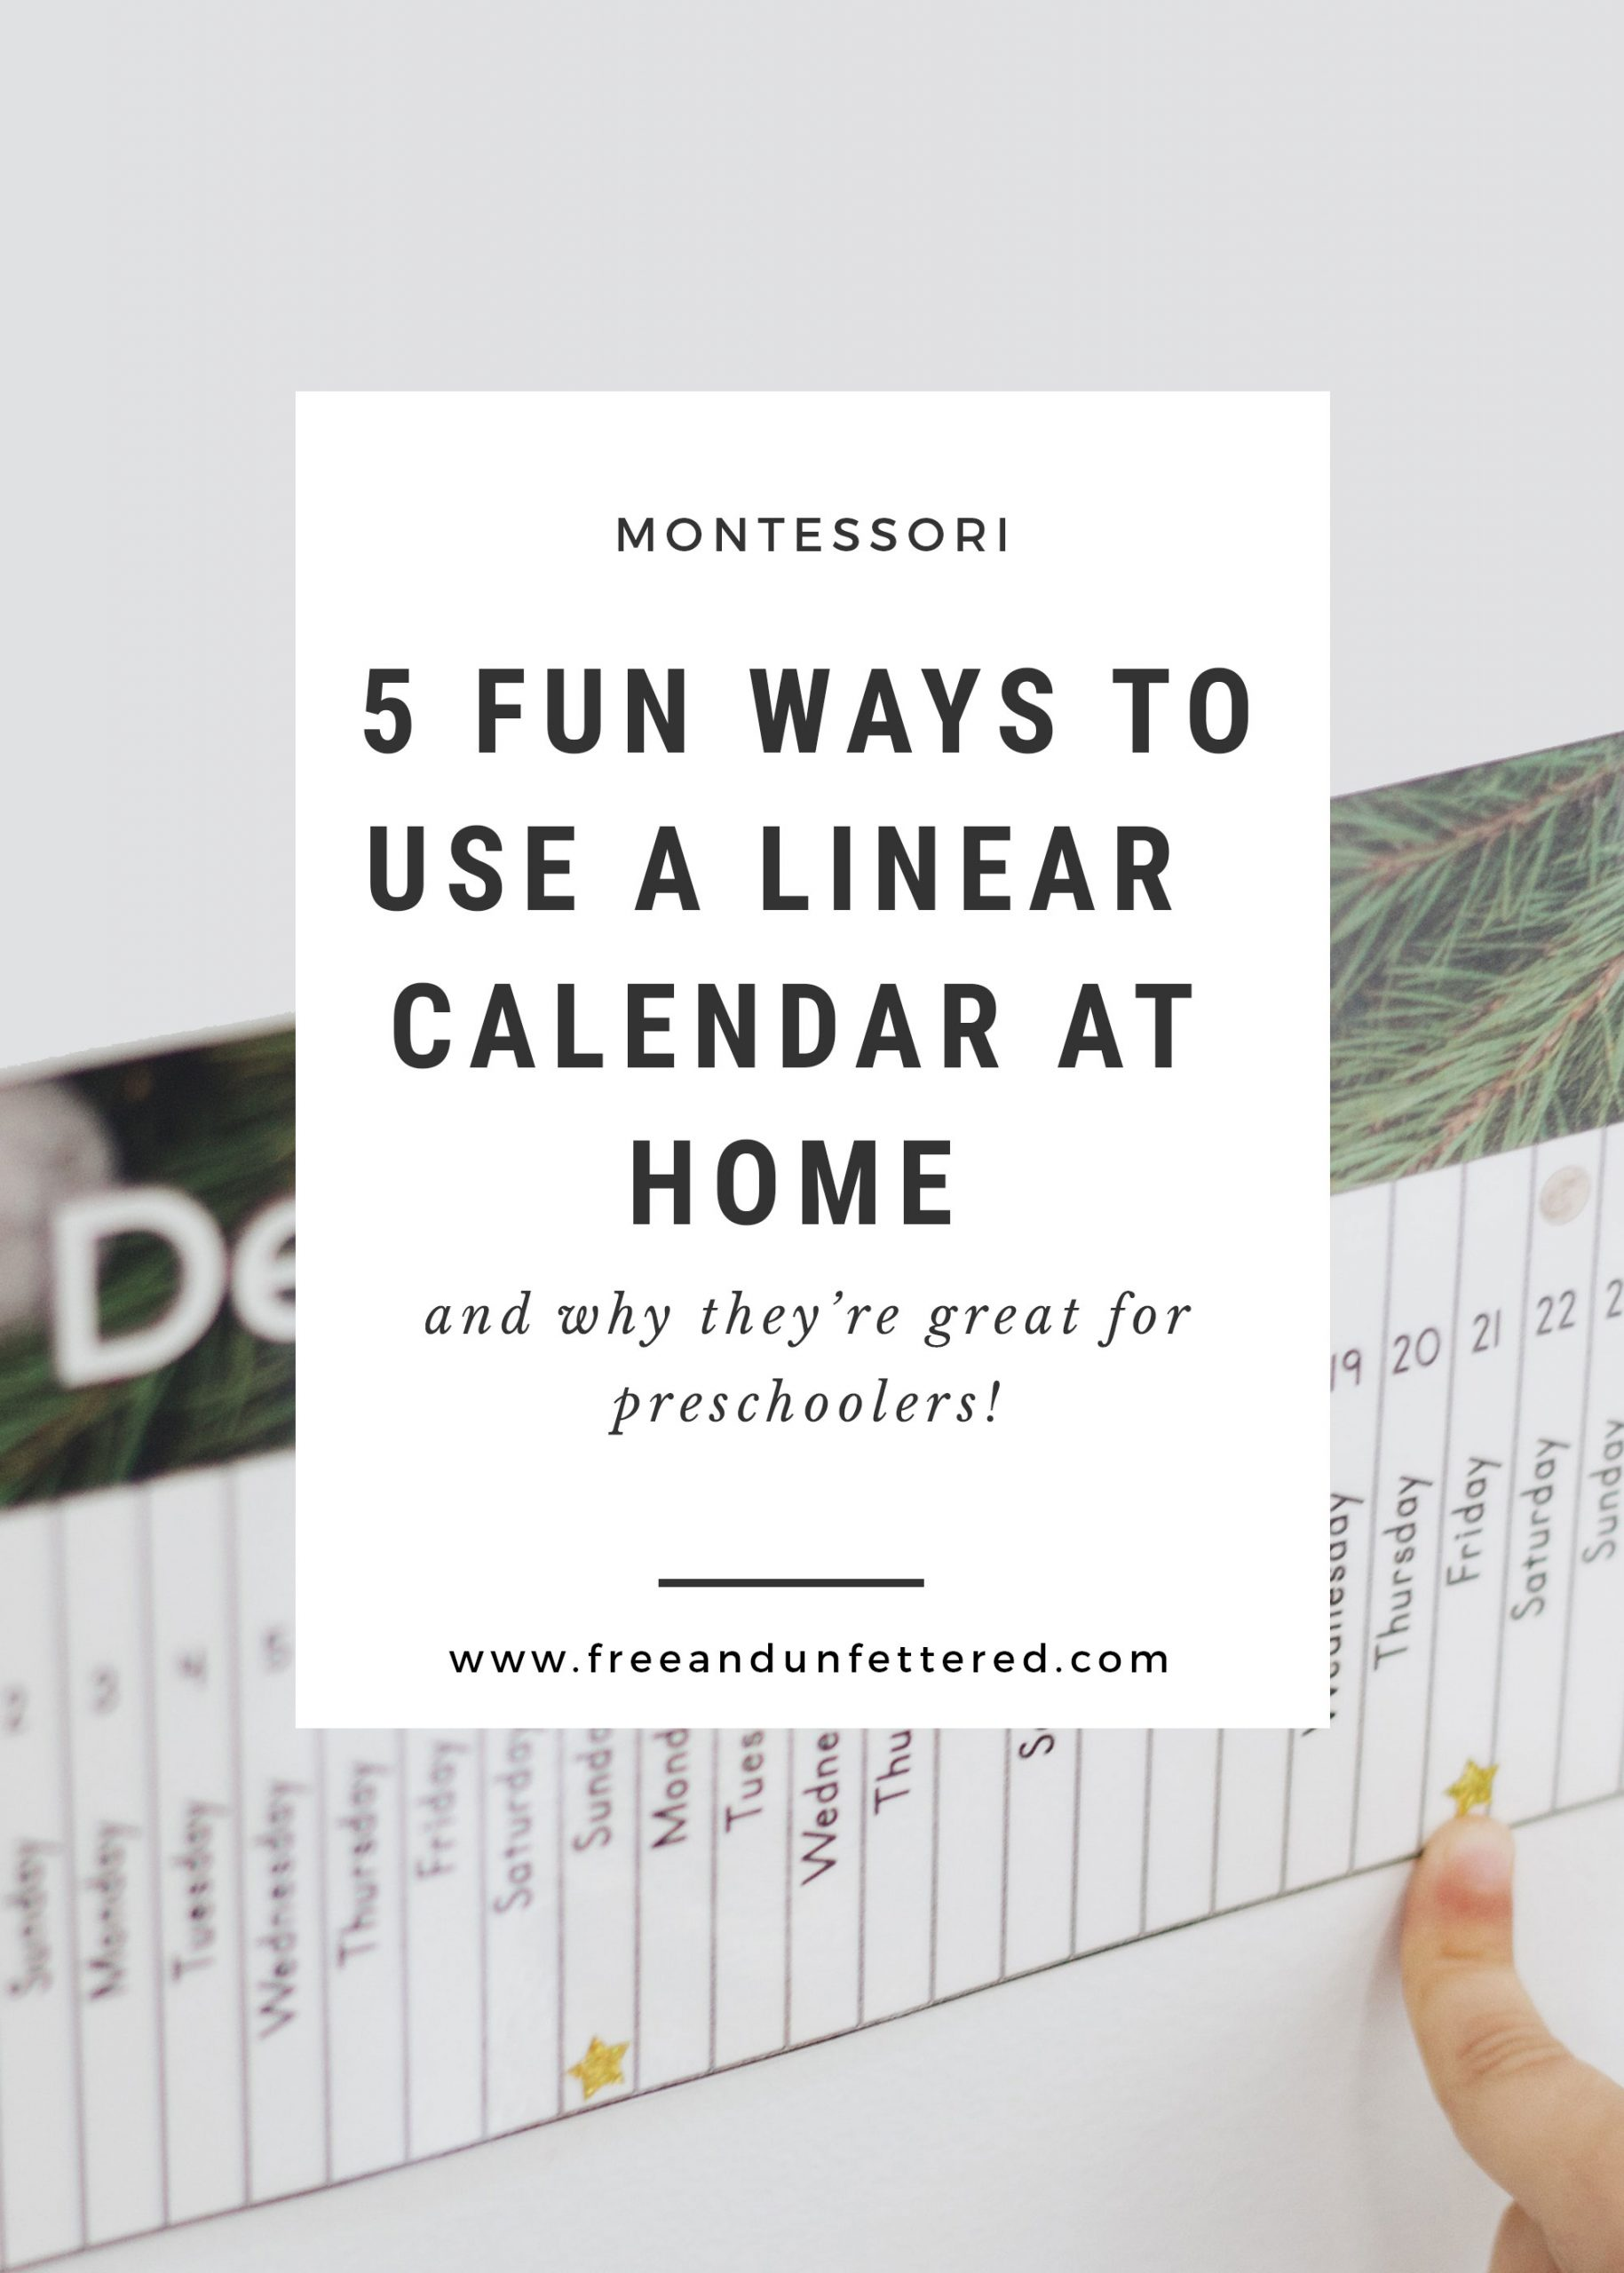 Montessori: 5 Fun Ways to Use a Linear Calendar at Home and Why They're Great for Preschoolers